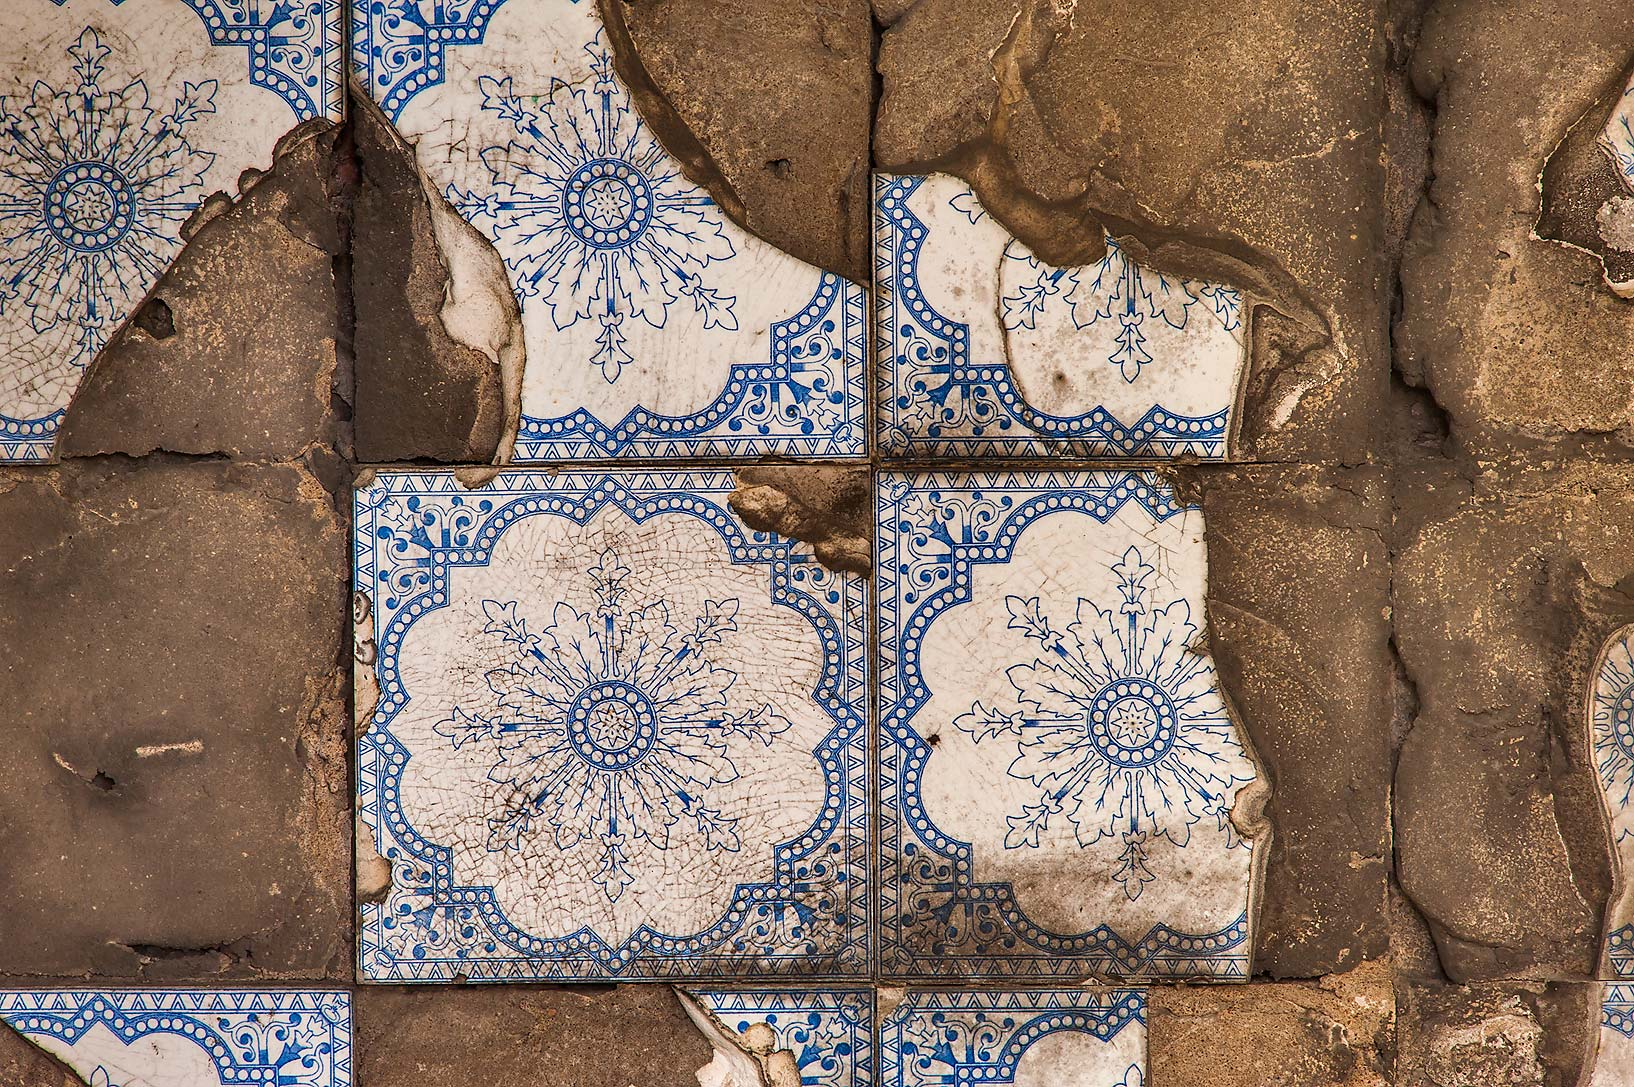 Fragments of tile inside a mausoleum in...Prospekt. St.Petersburg, Russia